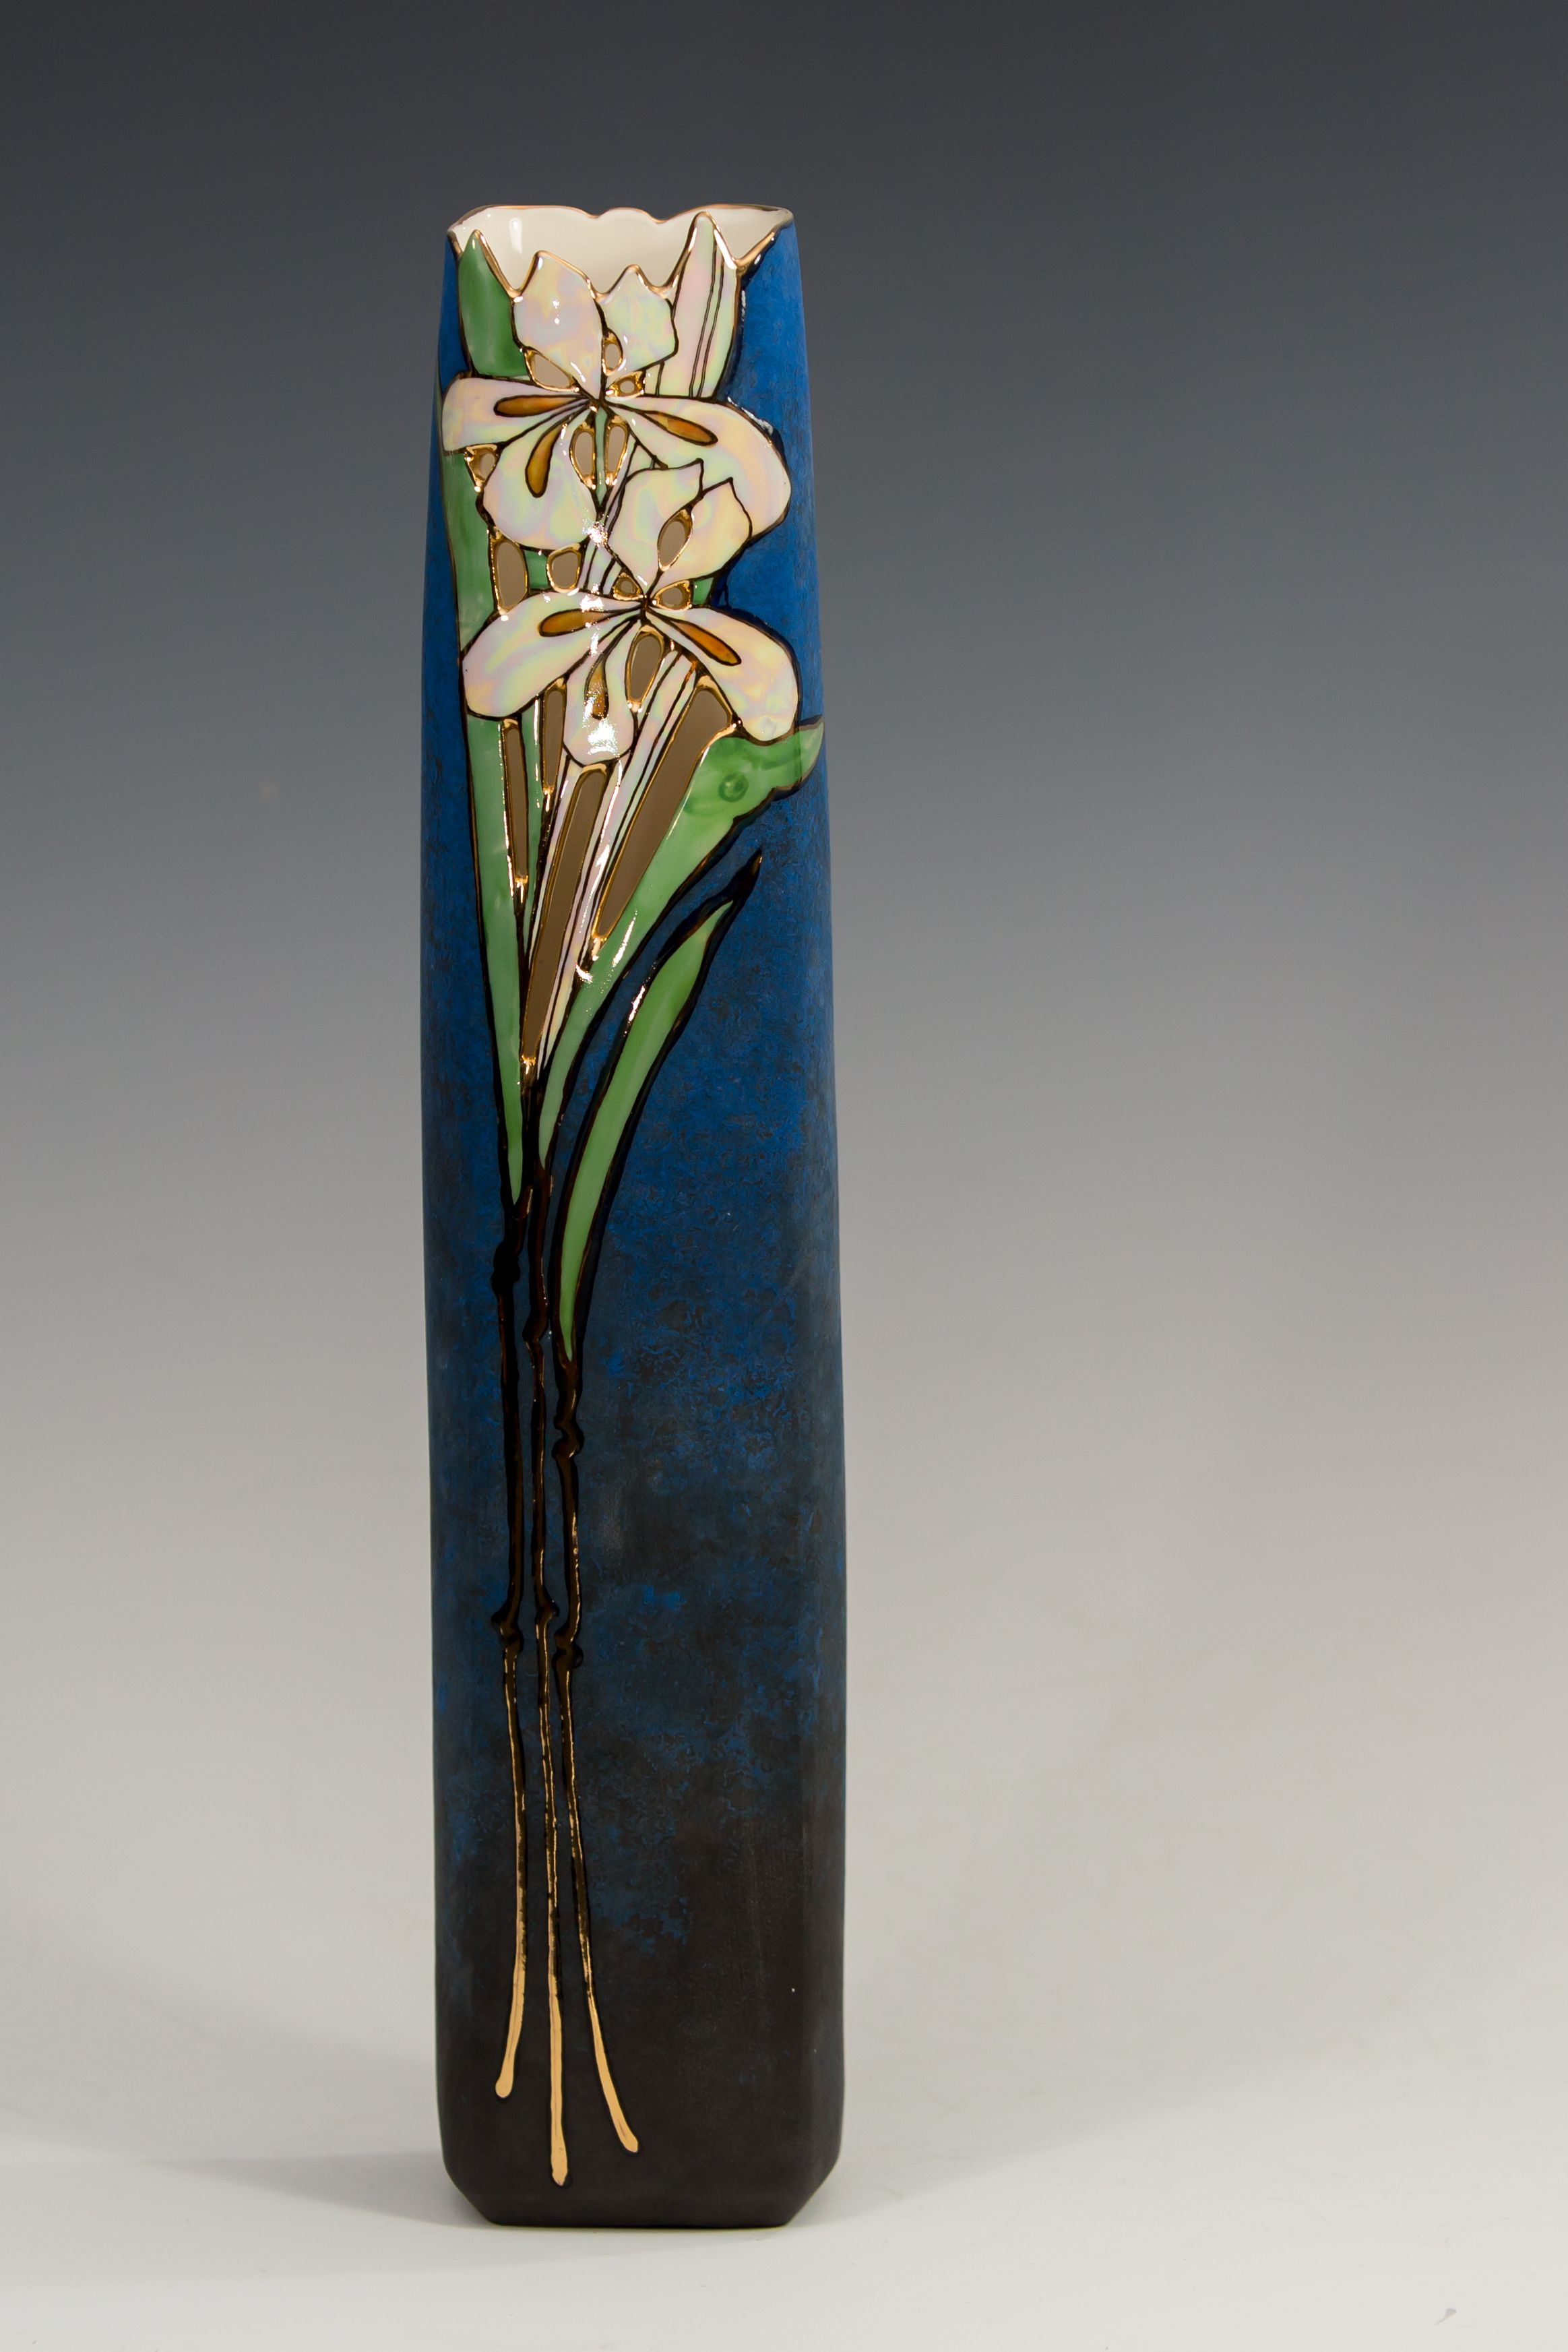 Cast Porcelain vase, by Jan Phelan,Garibaldi Highlands,BC